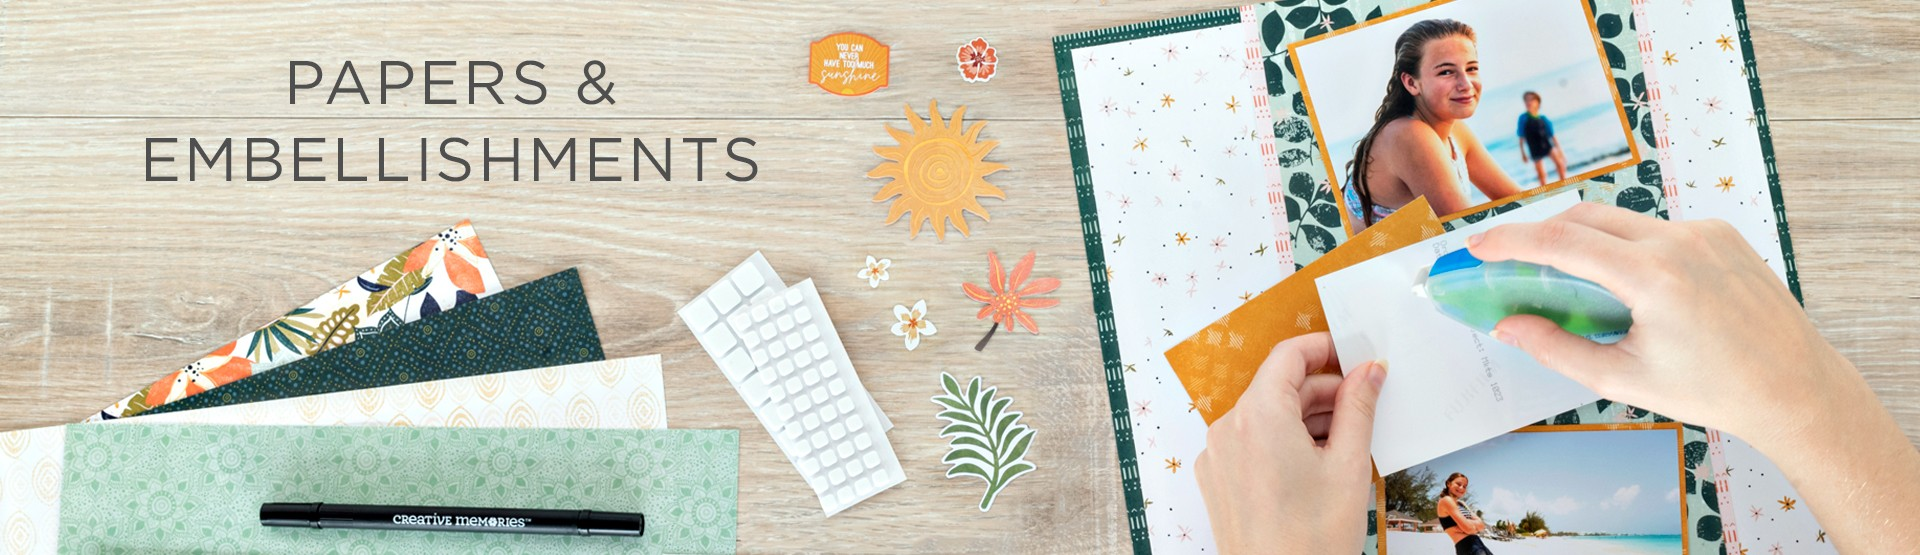 Papers & Embellishments